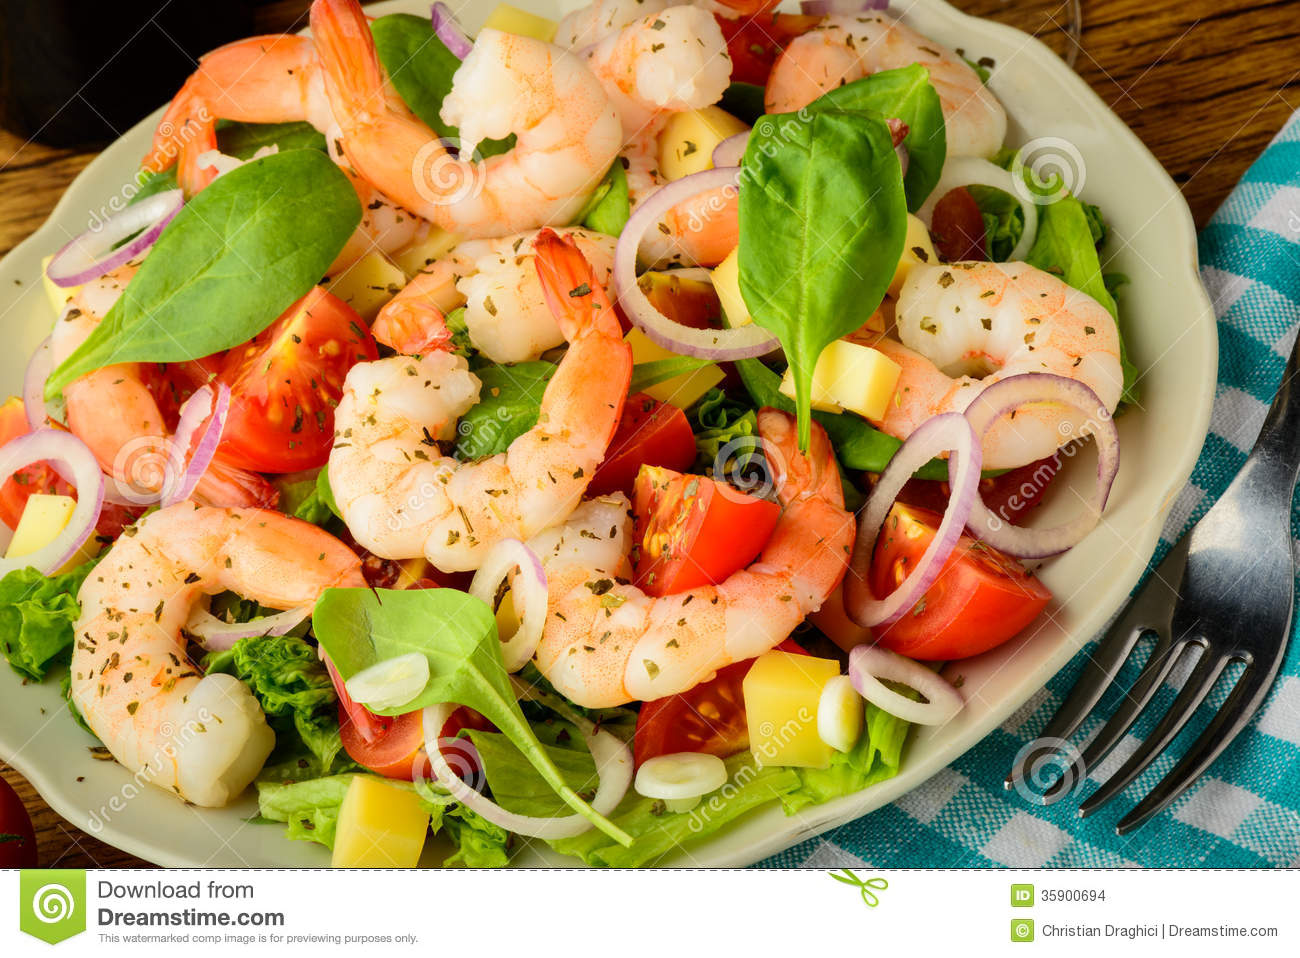 Tasty meal with fresh and healthy prawn salad and vegetables.